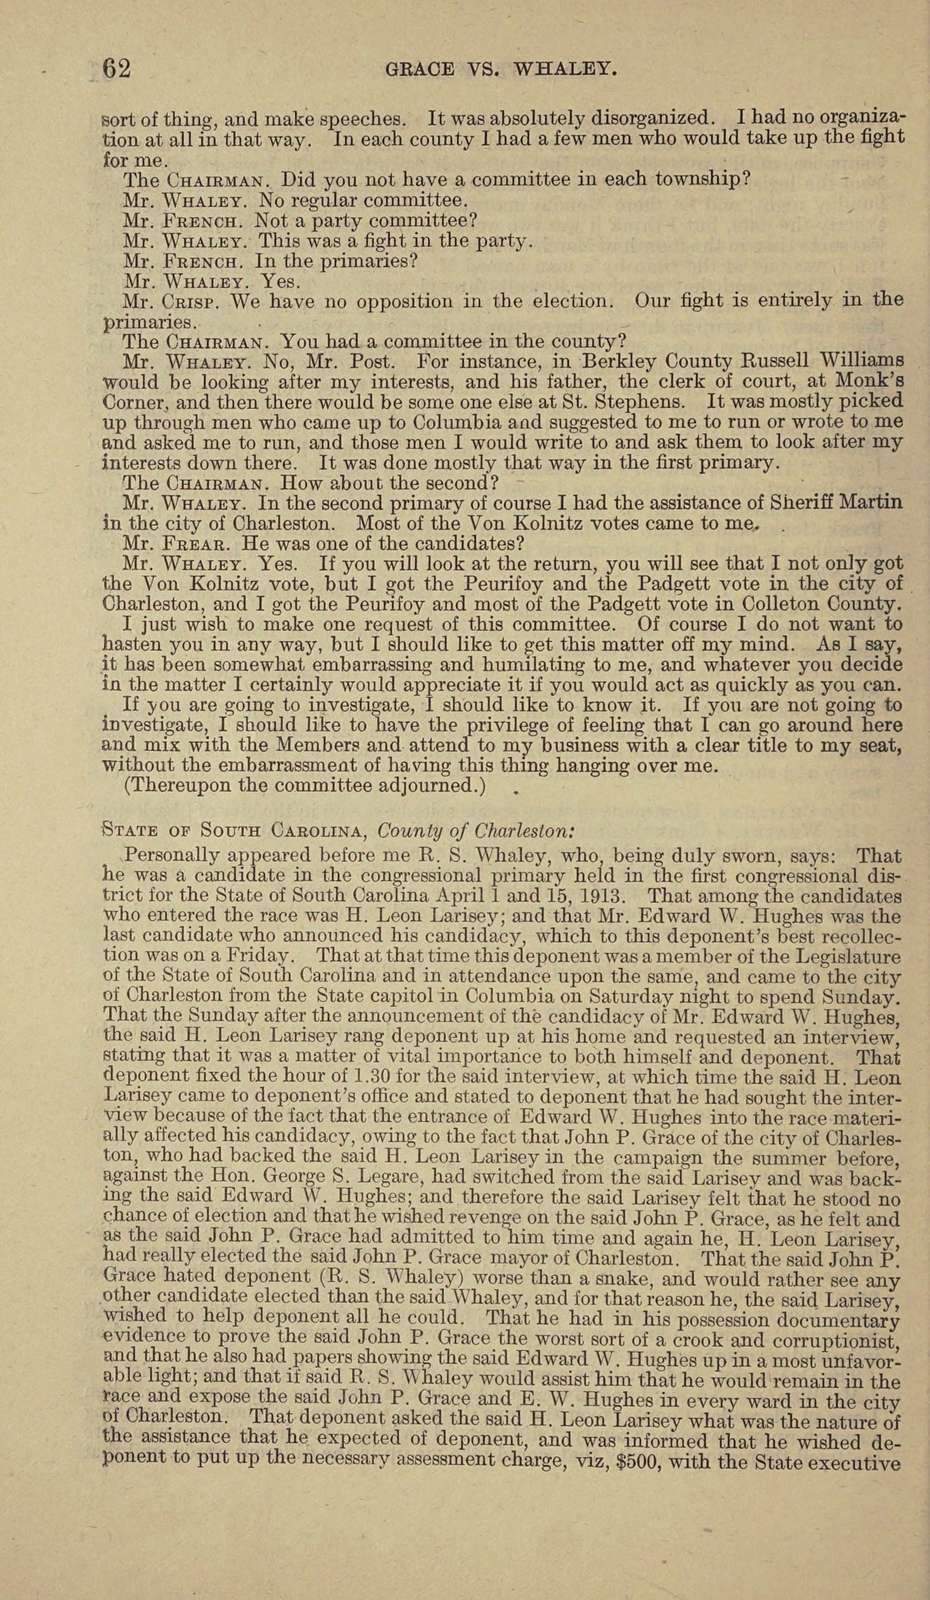 Charges filed by John P. Grace against Hon. Richard S. Whaley, congressman elect from the First Congressional District of South Carolina. The record. Referred to Committee on Elections no. 1